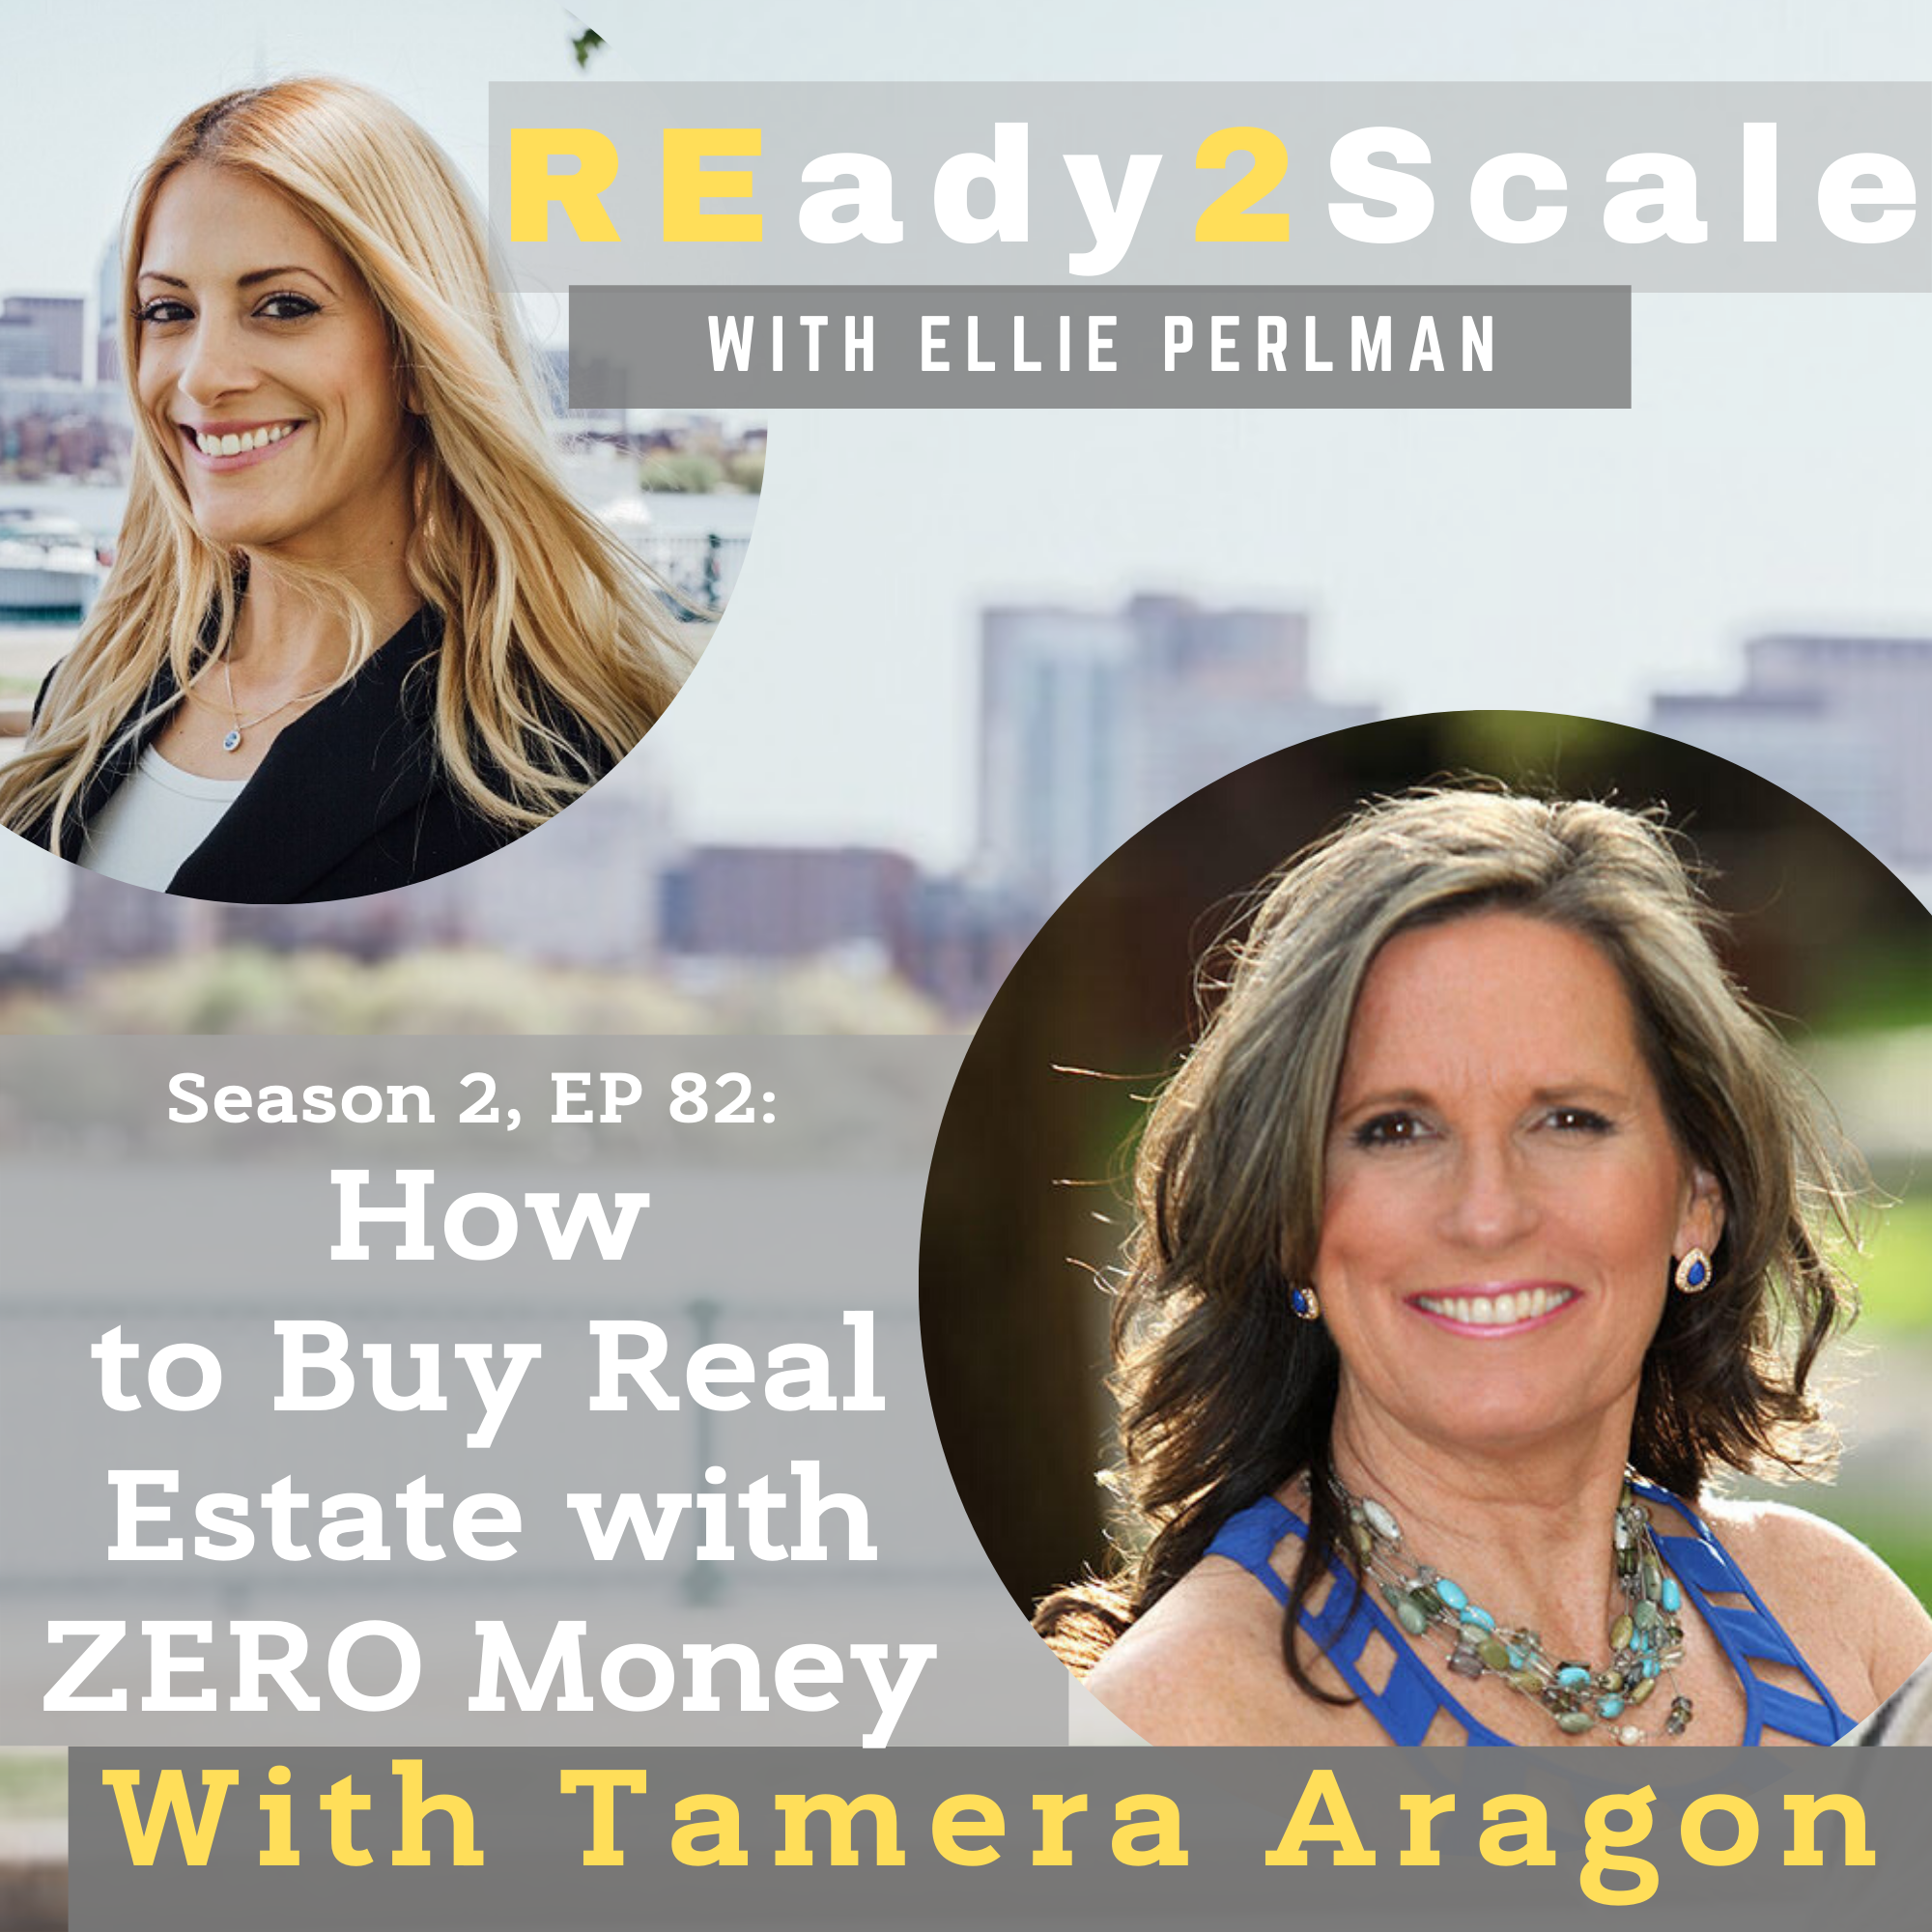 S2 EP 82: How to Buy Real Estate with ZERO Money with Tamera Aragon